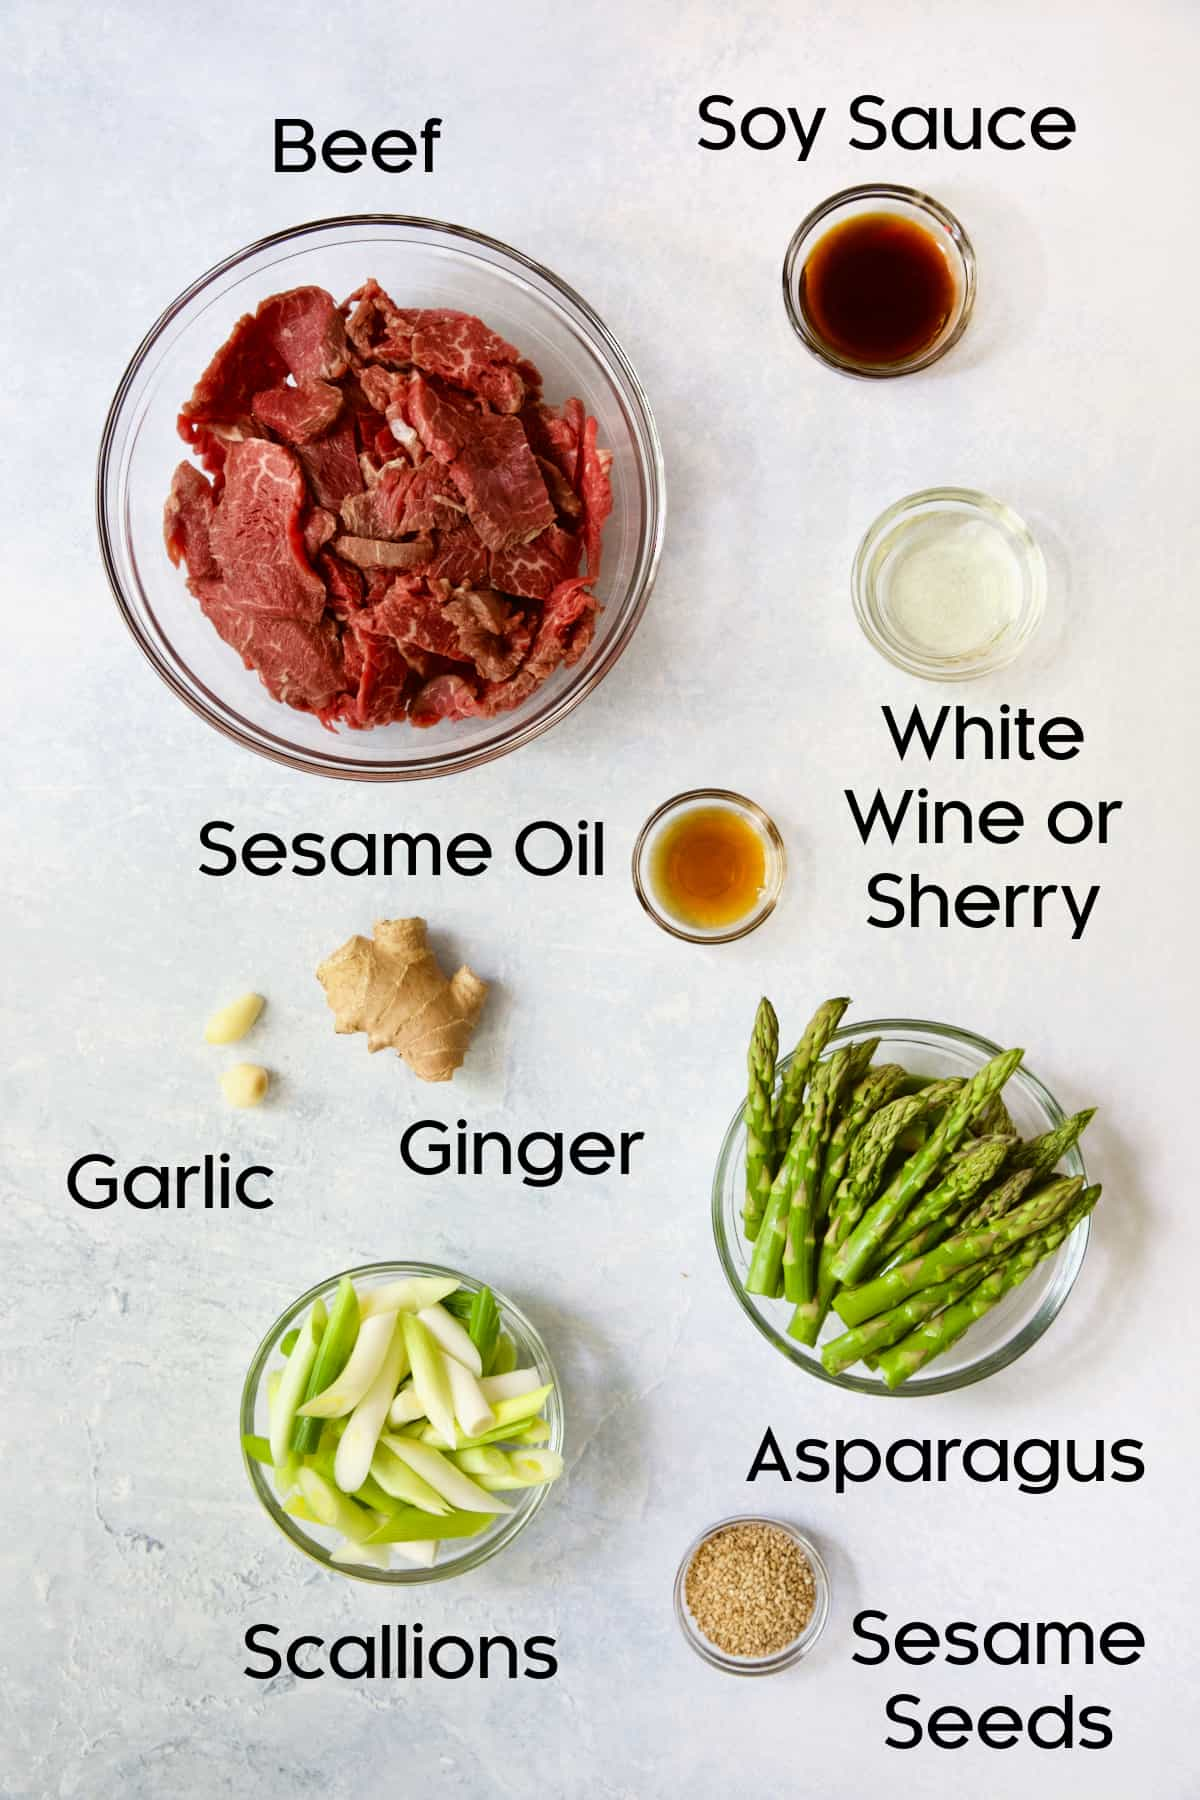 Ingredients for Sesame Beef and Asparagus Stir-Fry in glass bowls.